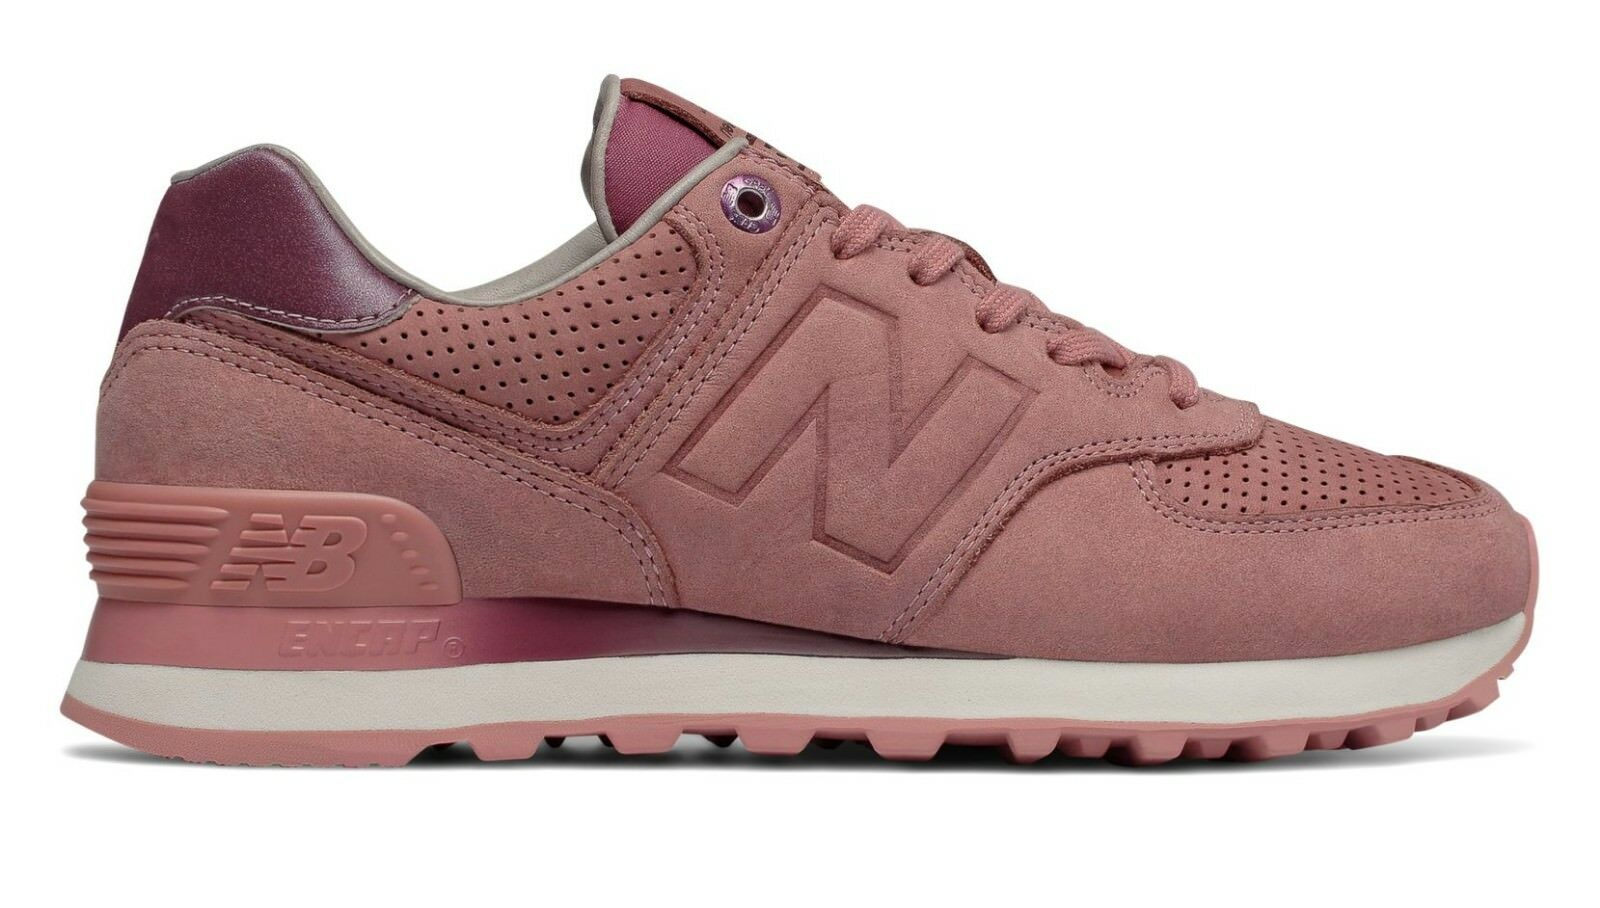 NEW BALANCE WOMEN WL574GRY 574 CLASSICS DUSTED PEACH PINK LEATHER Sneakers